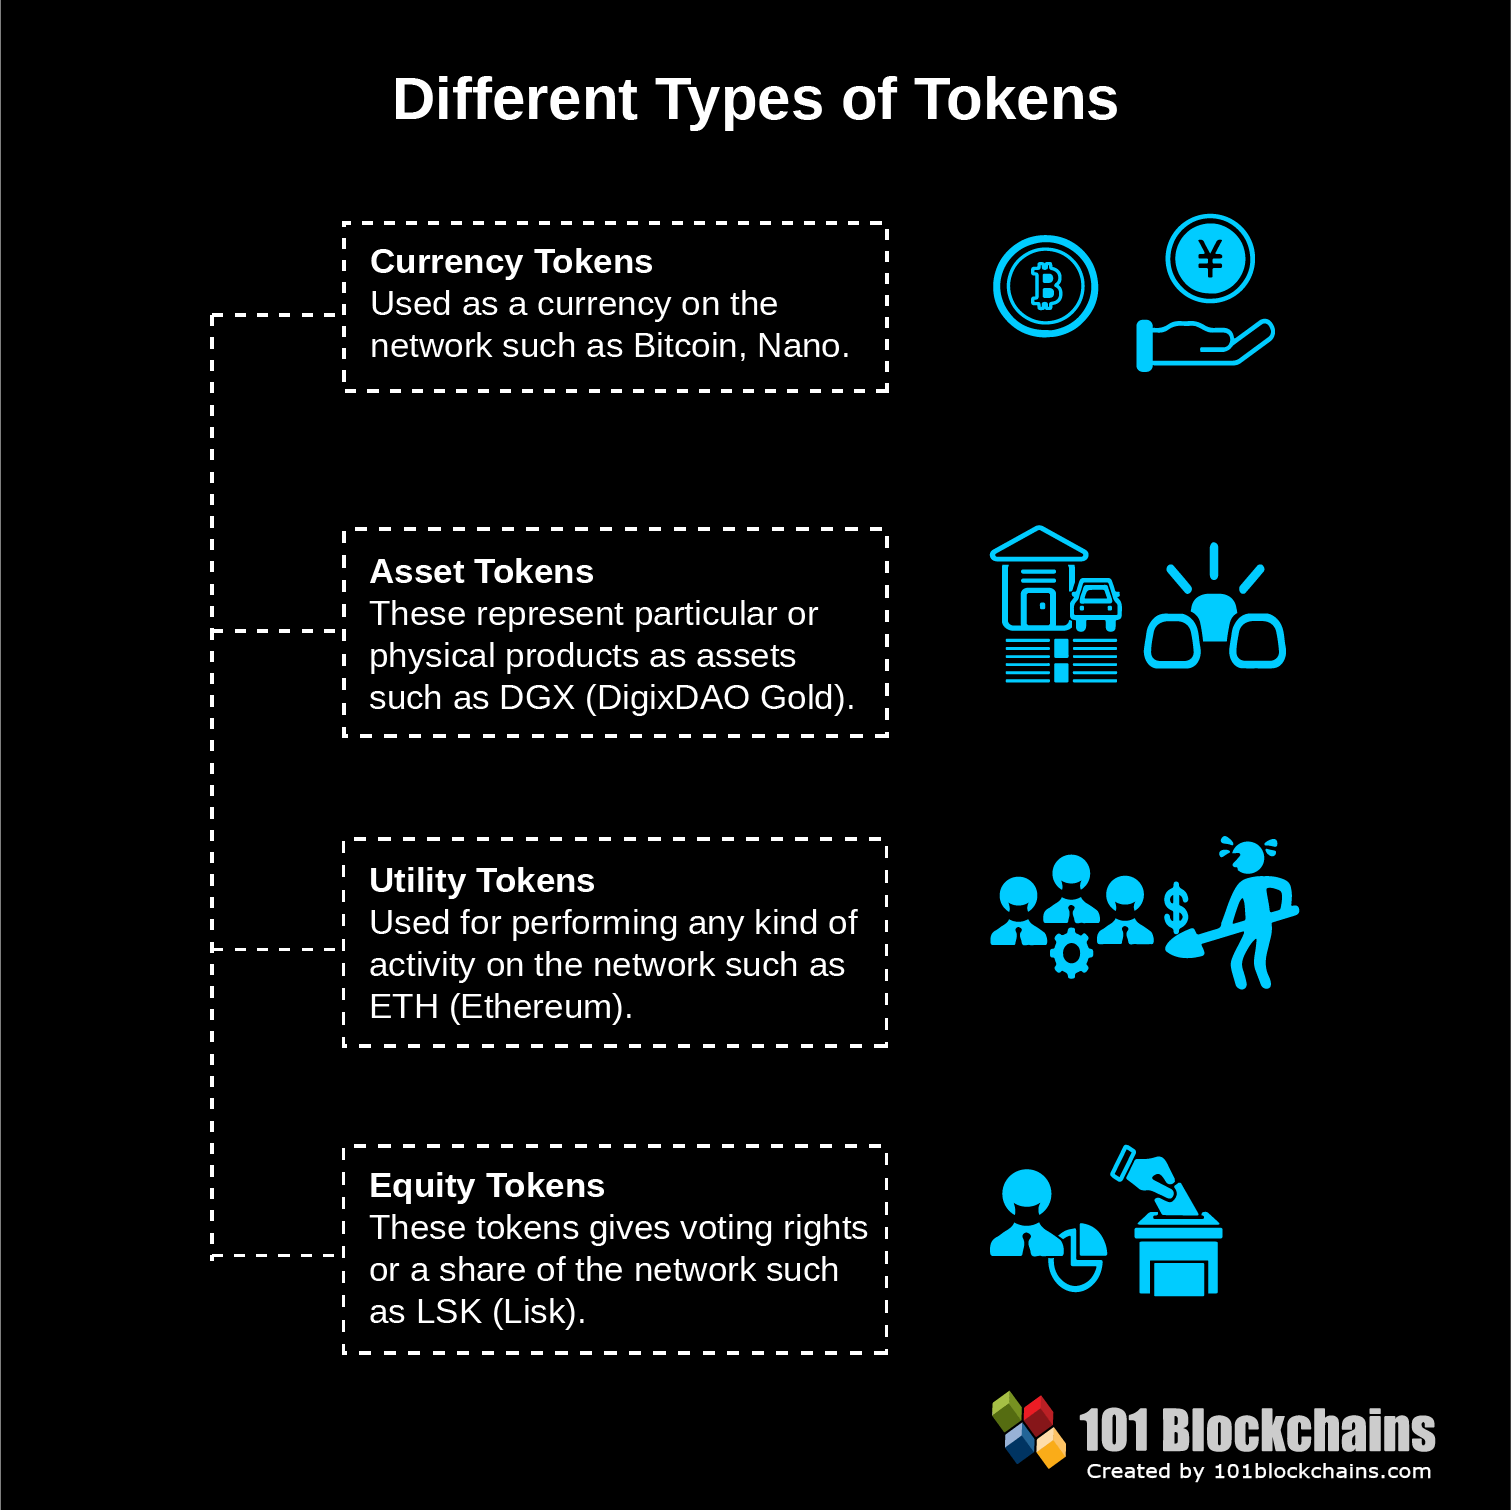 Different Types of Tokens